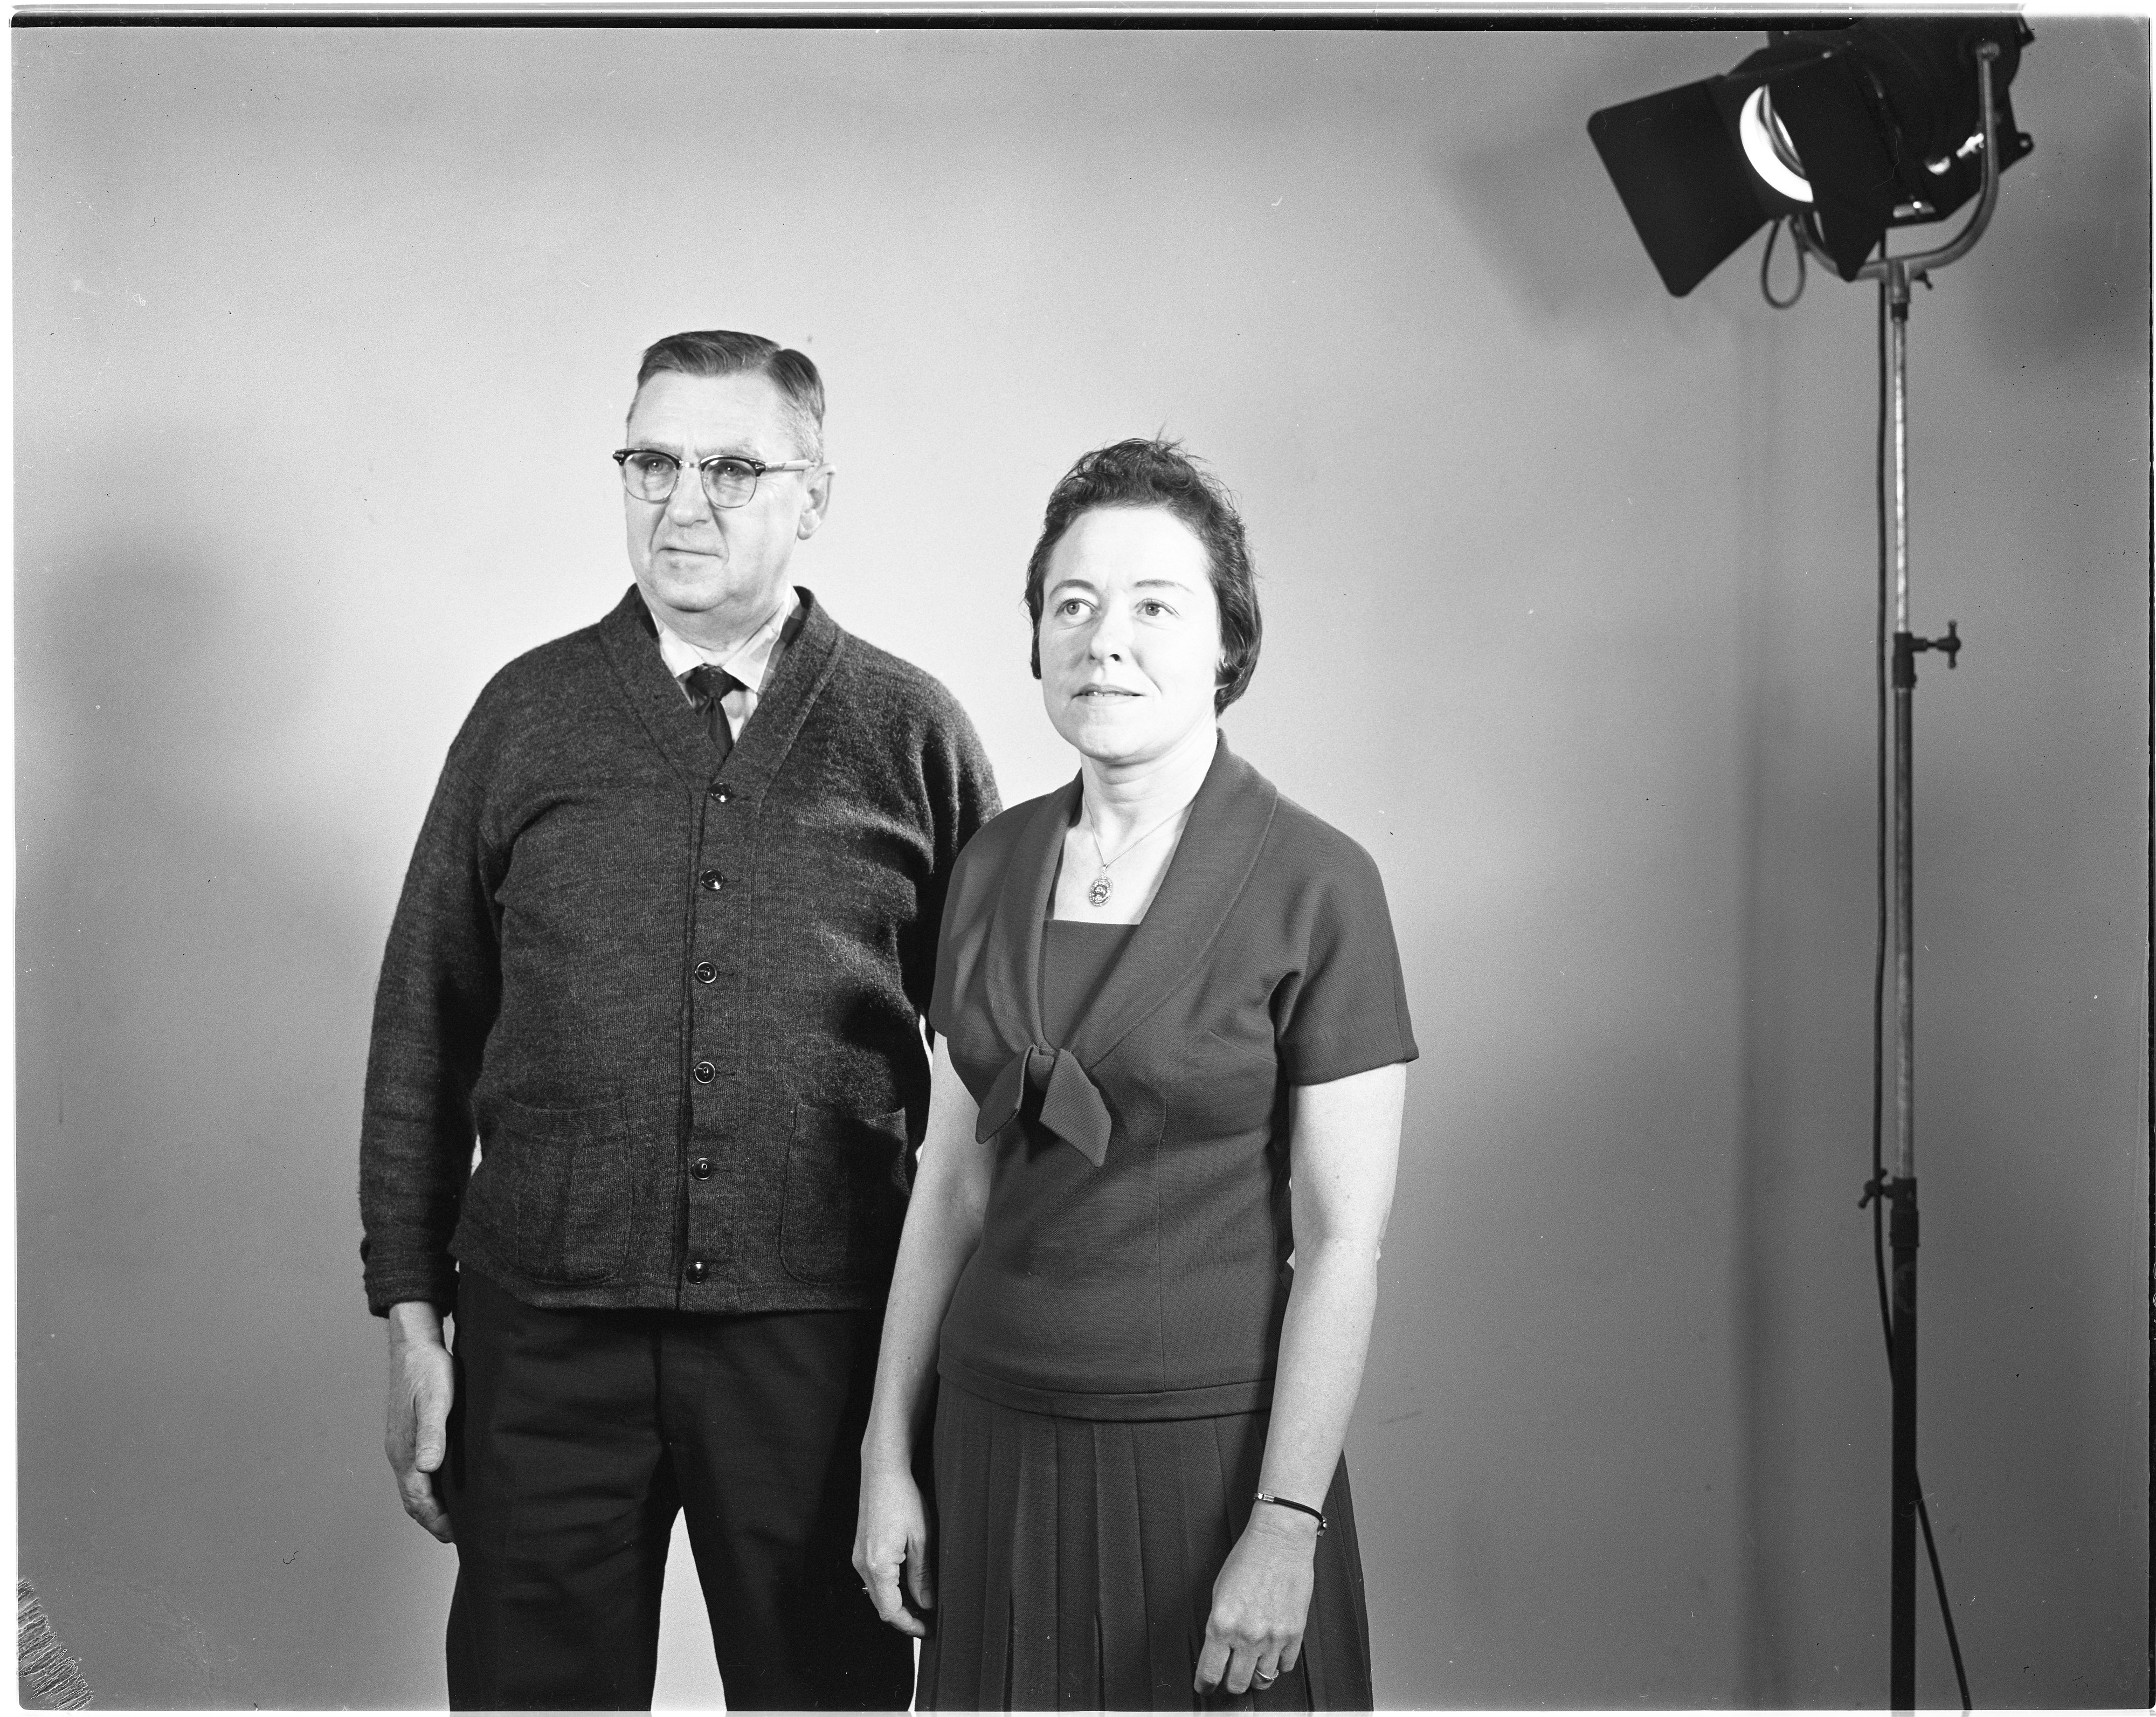 Portrait of Glen Ridenour and Odes Elden, Muscular Dystrophy Drive Heads, March 1965 image